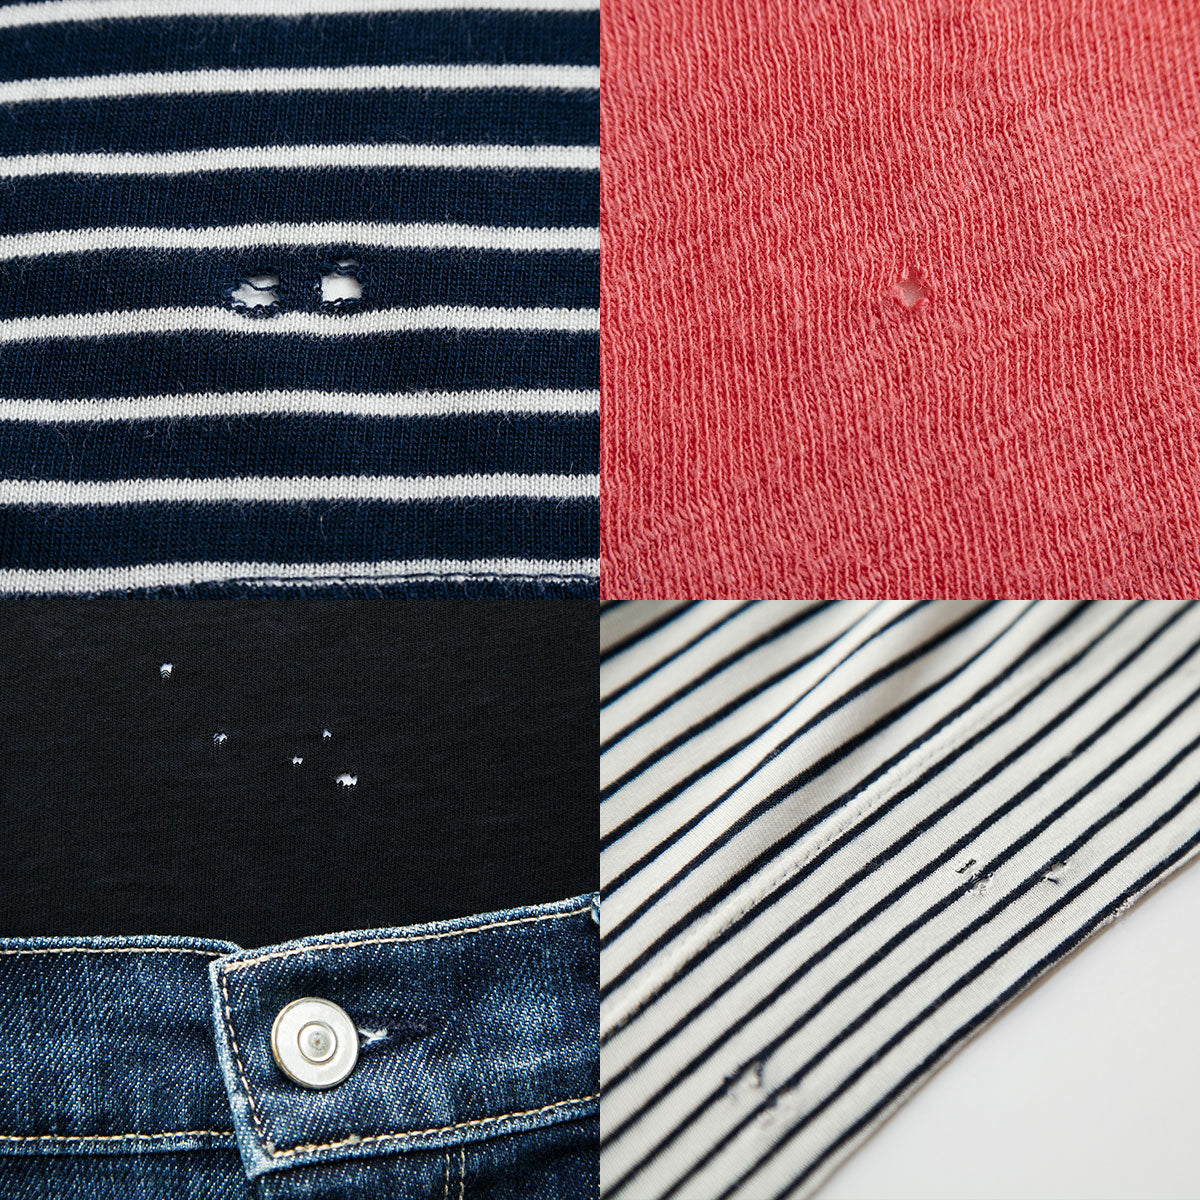 Mysterious holes at the bottom of your top or shirt